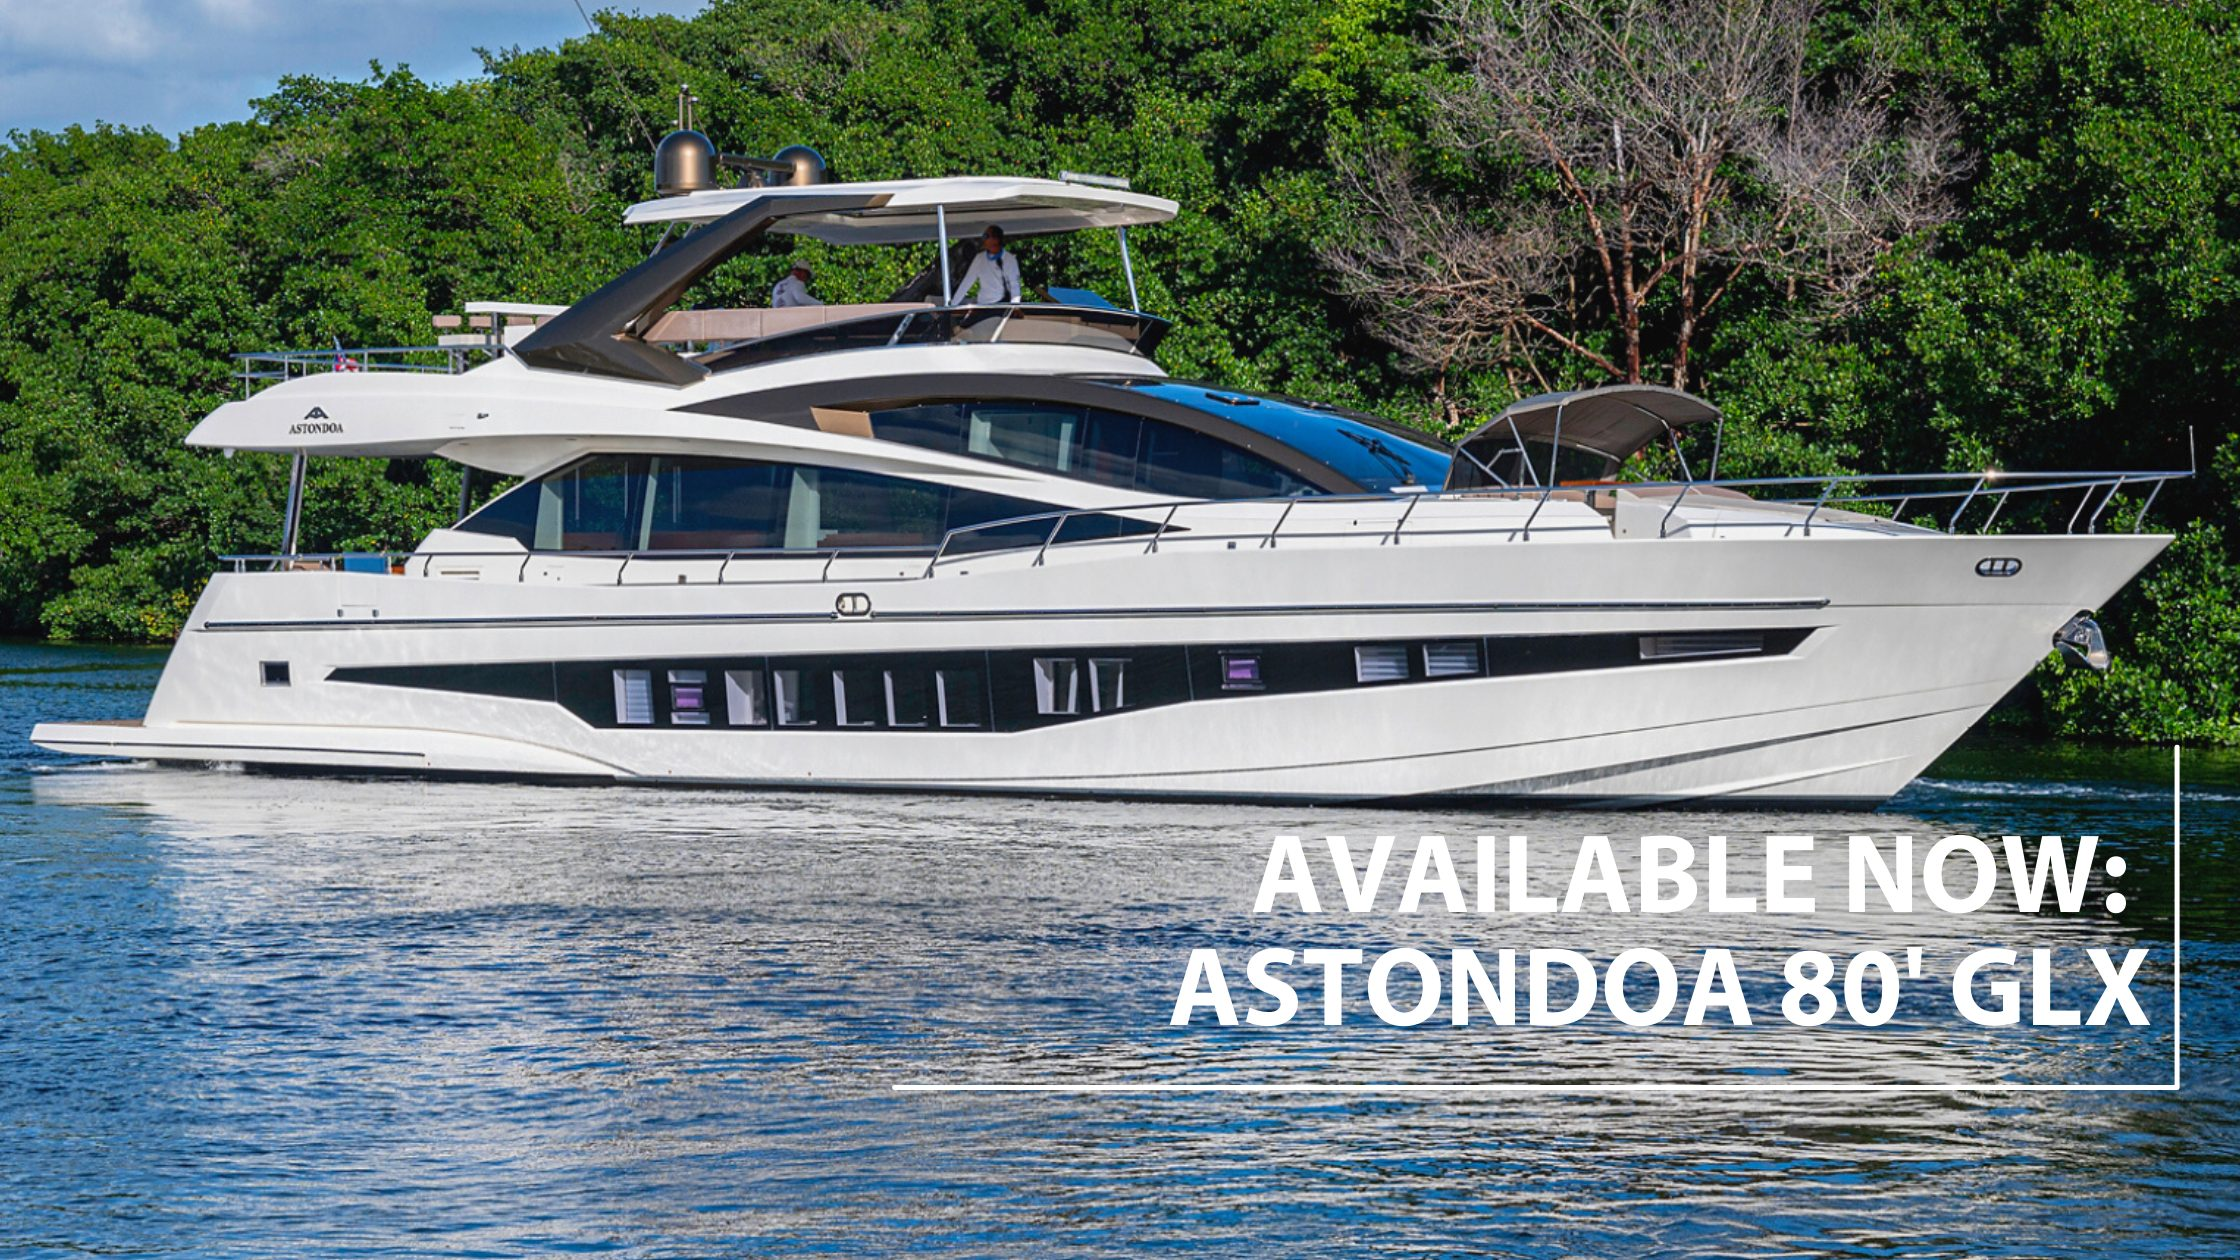 2018 Astondoa 80 GLX For Sale By HMY Yachts